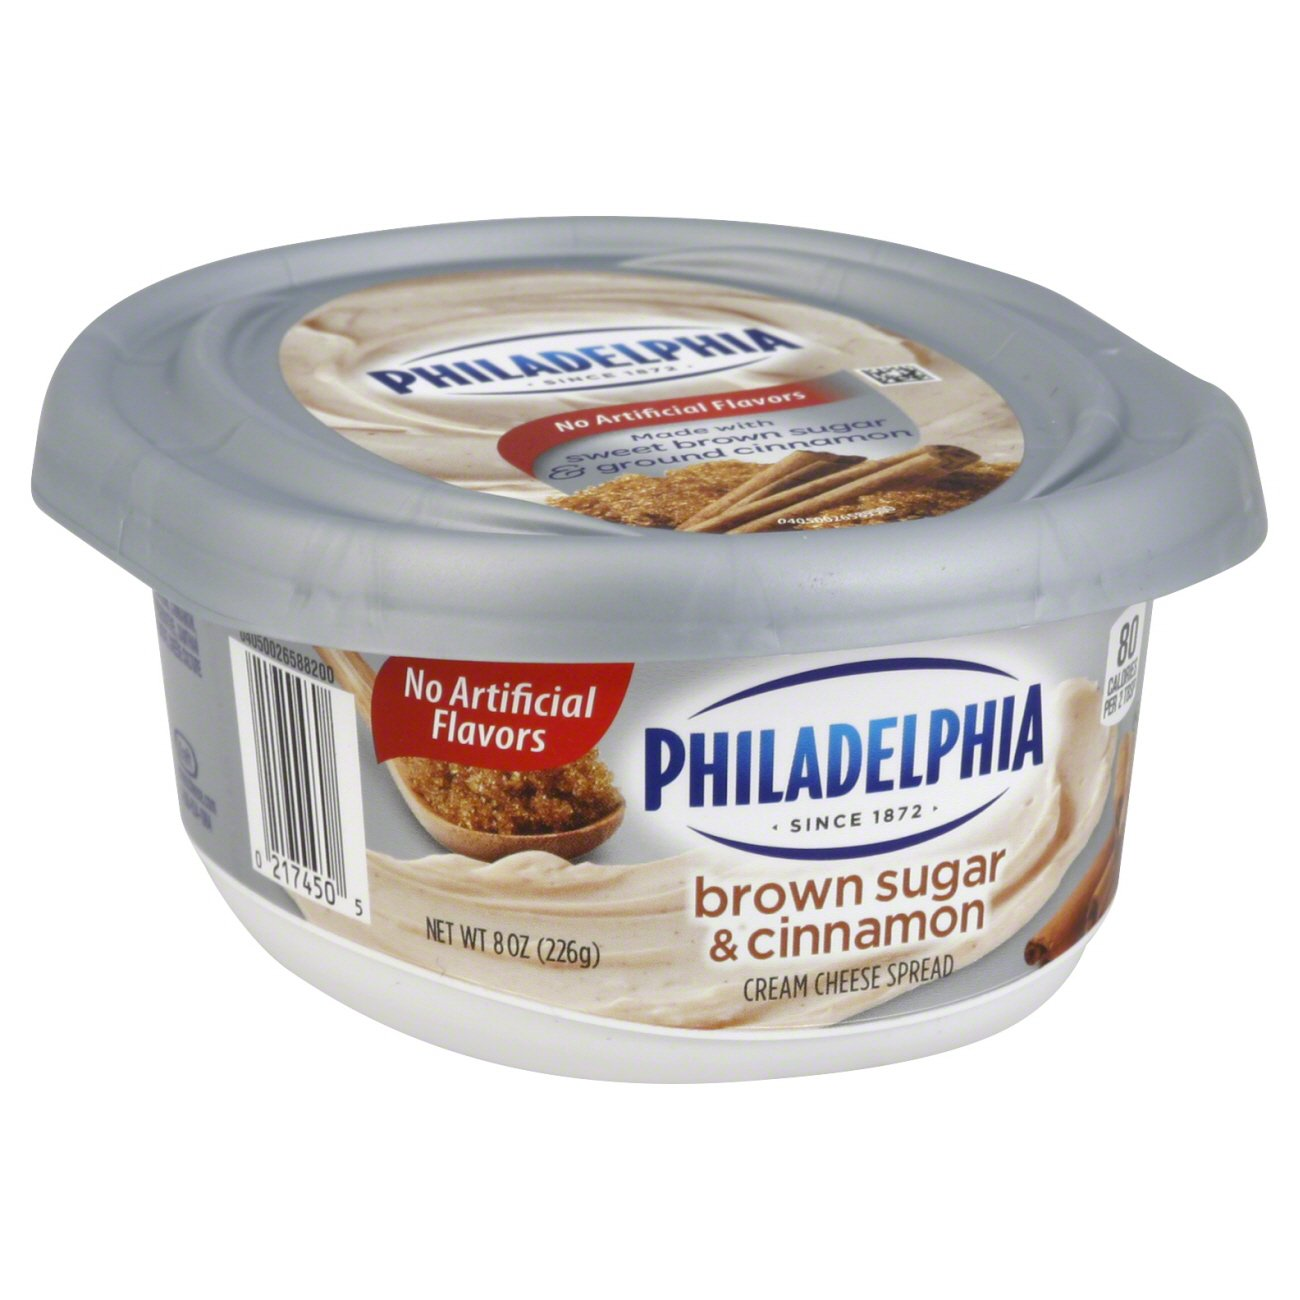 Philadelphia Brown Sugar Cinnamon Cream Cheese Spread At Heb